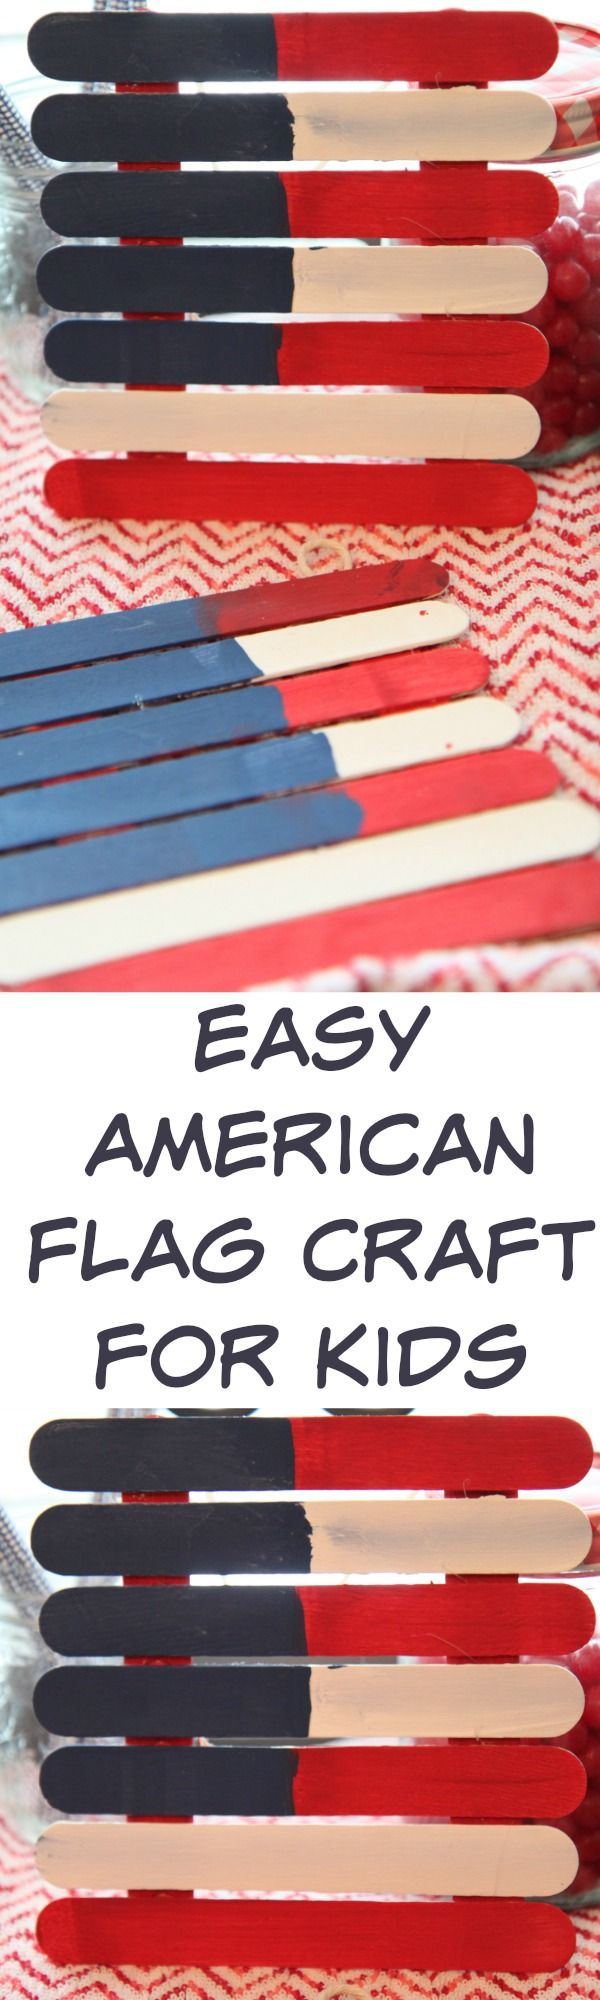 Easy American Flag Art Craft for Kids :: DIY Project Idea for the 4th of July – …  – Best of Briana